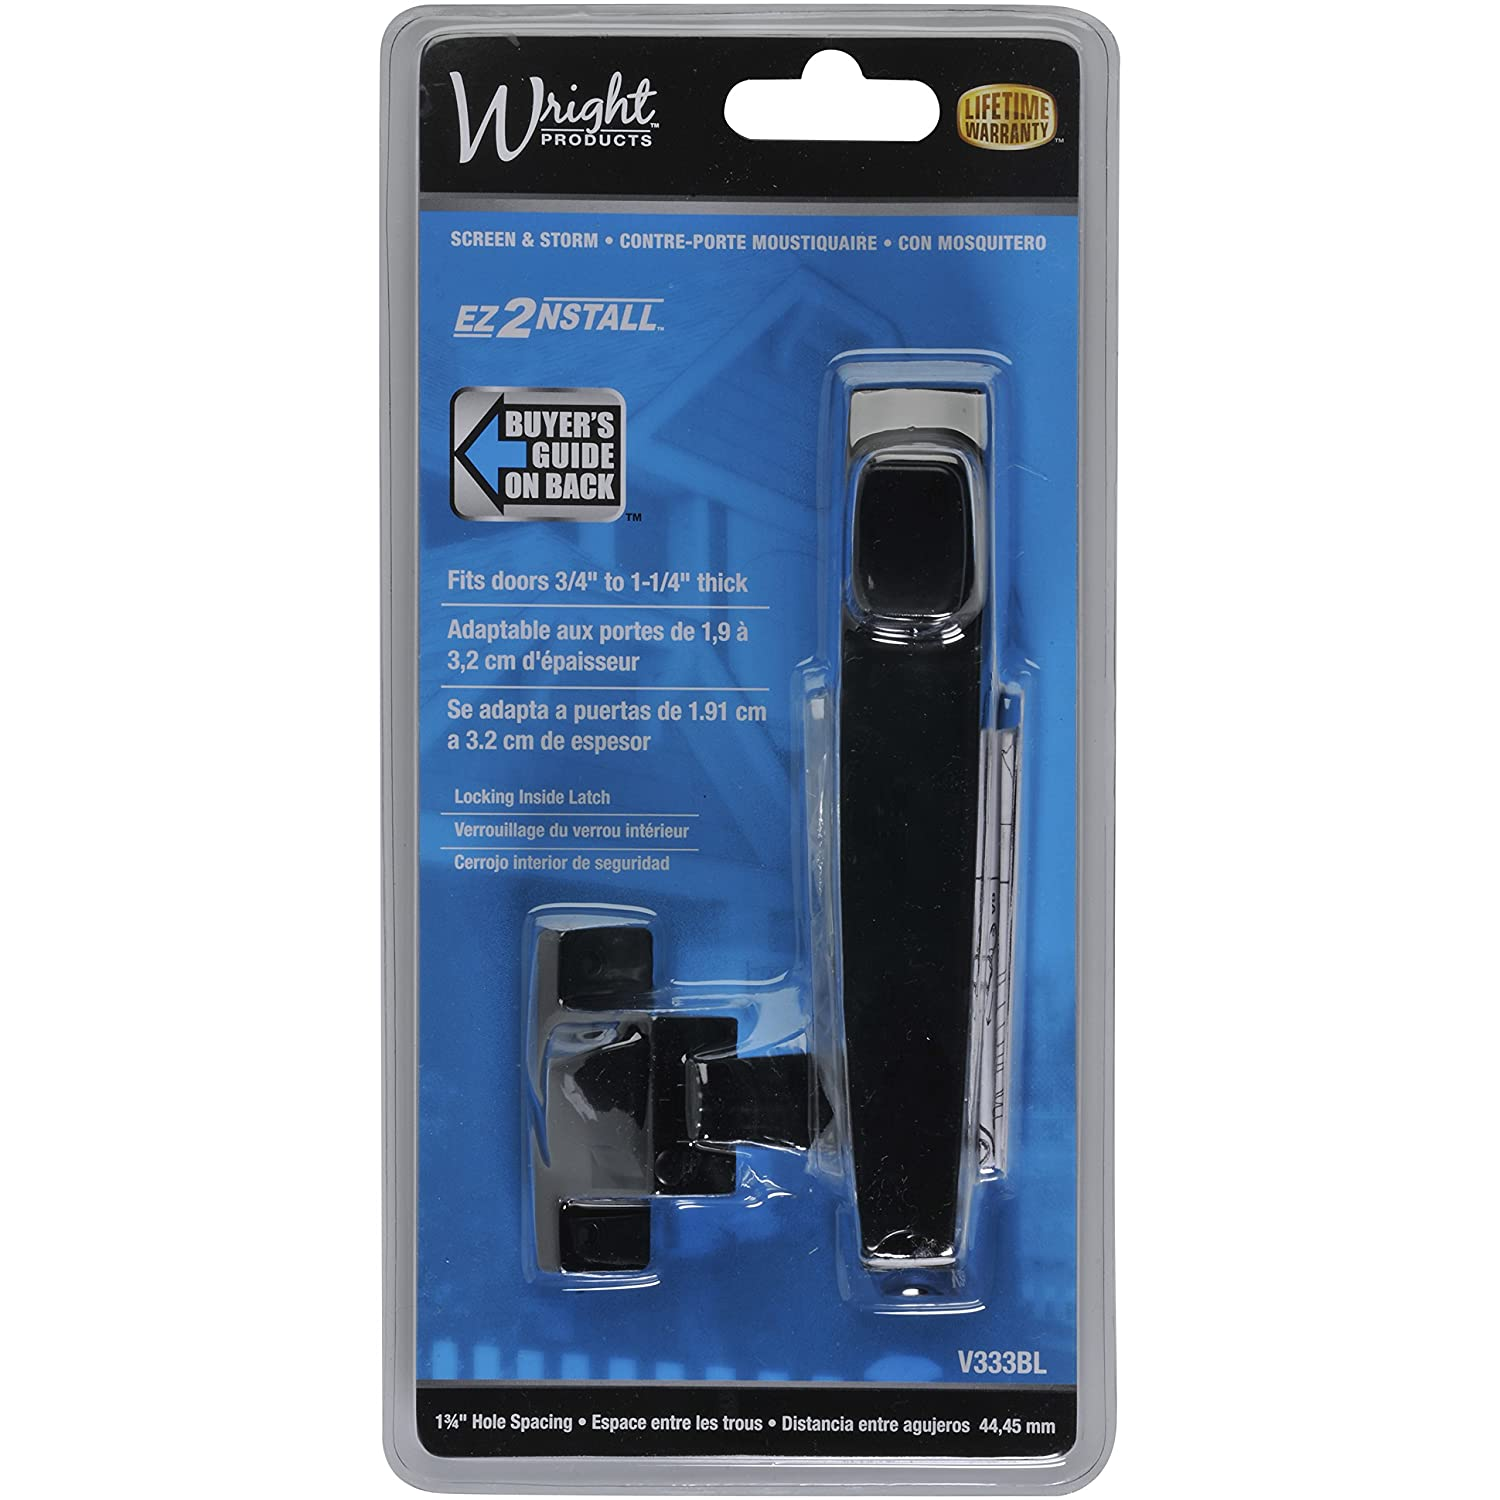 Wright Products V333BL TIE DOWN PUSH BUTTON Handle, BLACK   Screen Door  Hardware   Amazon.com